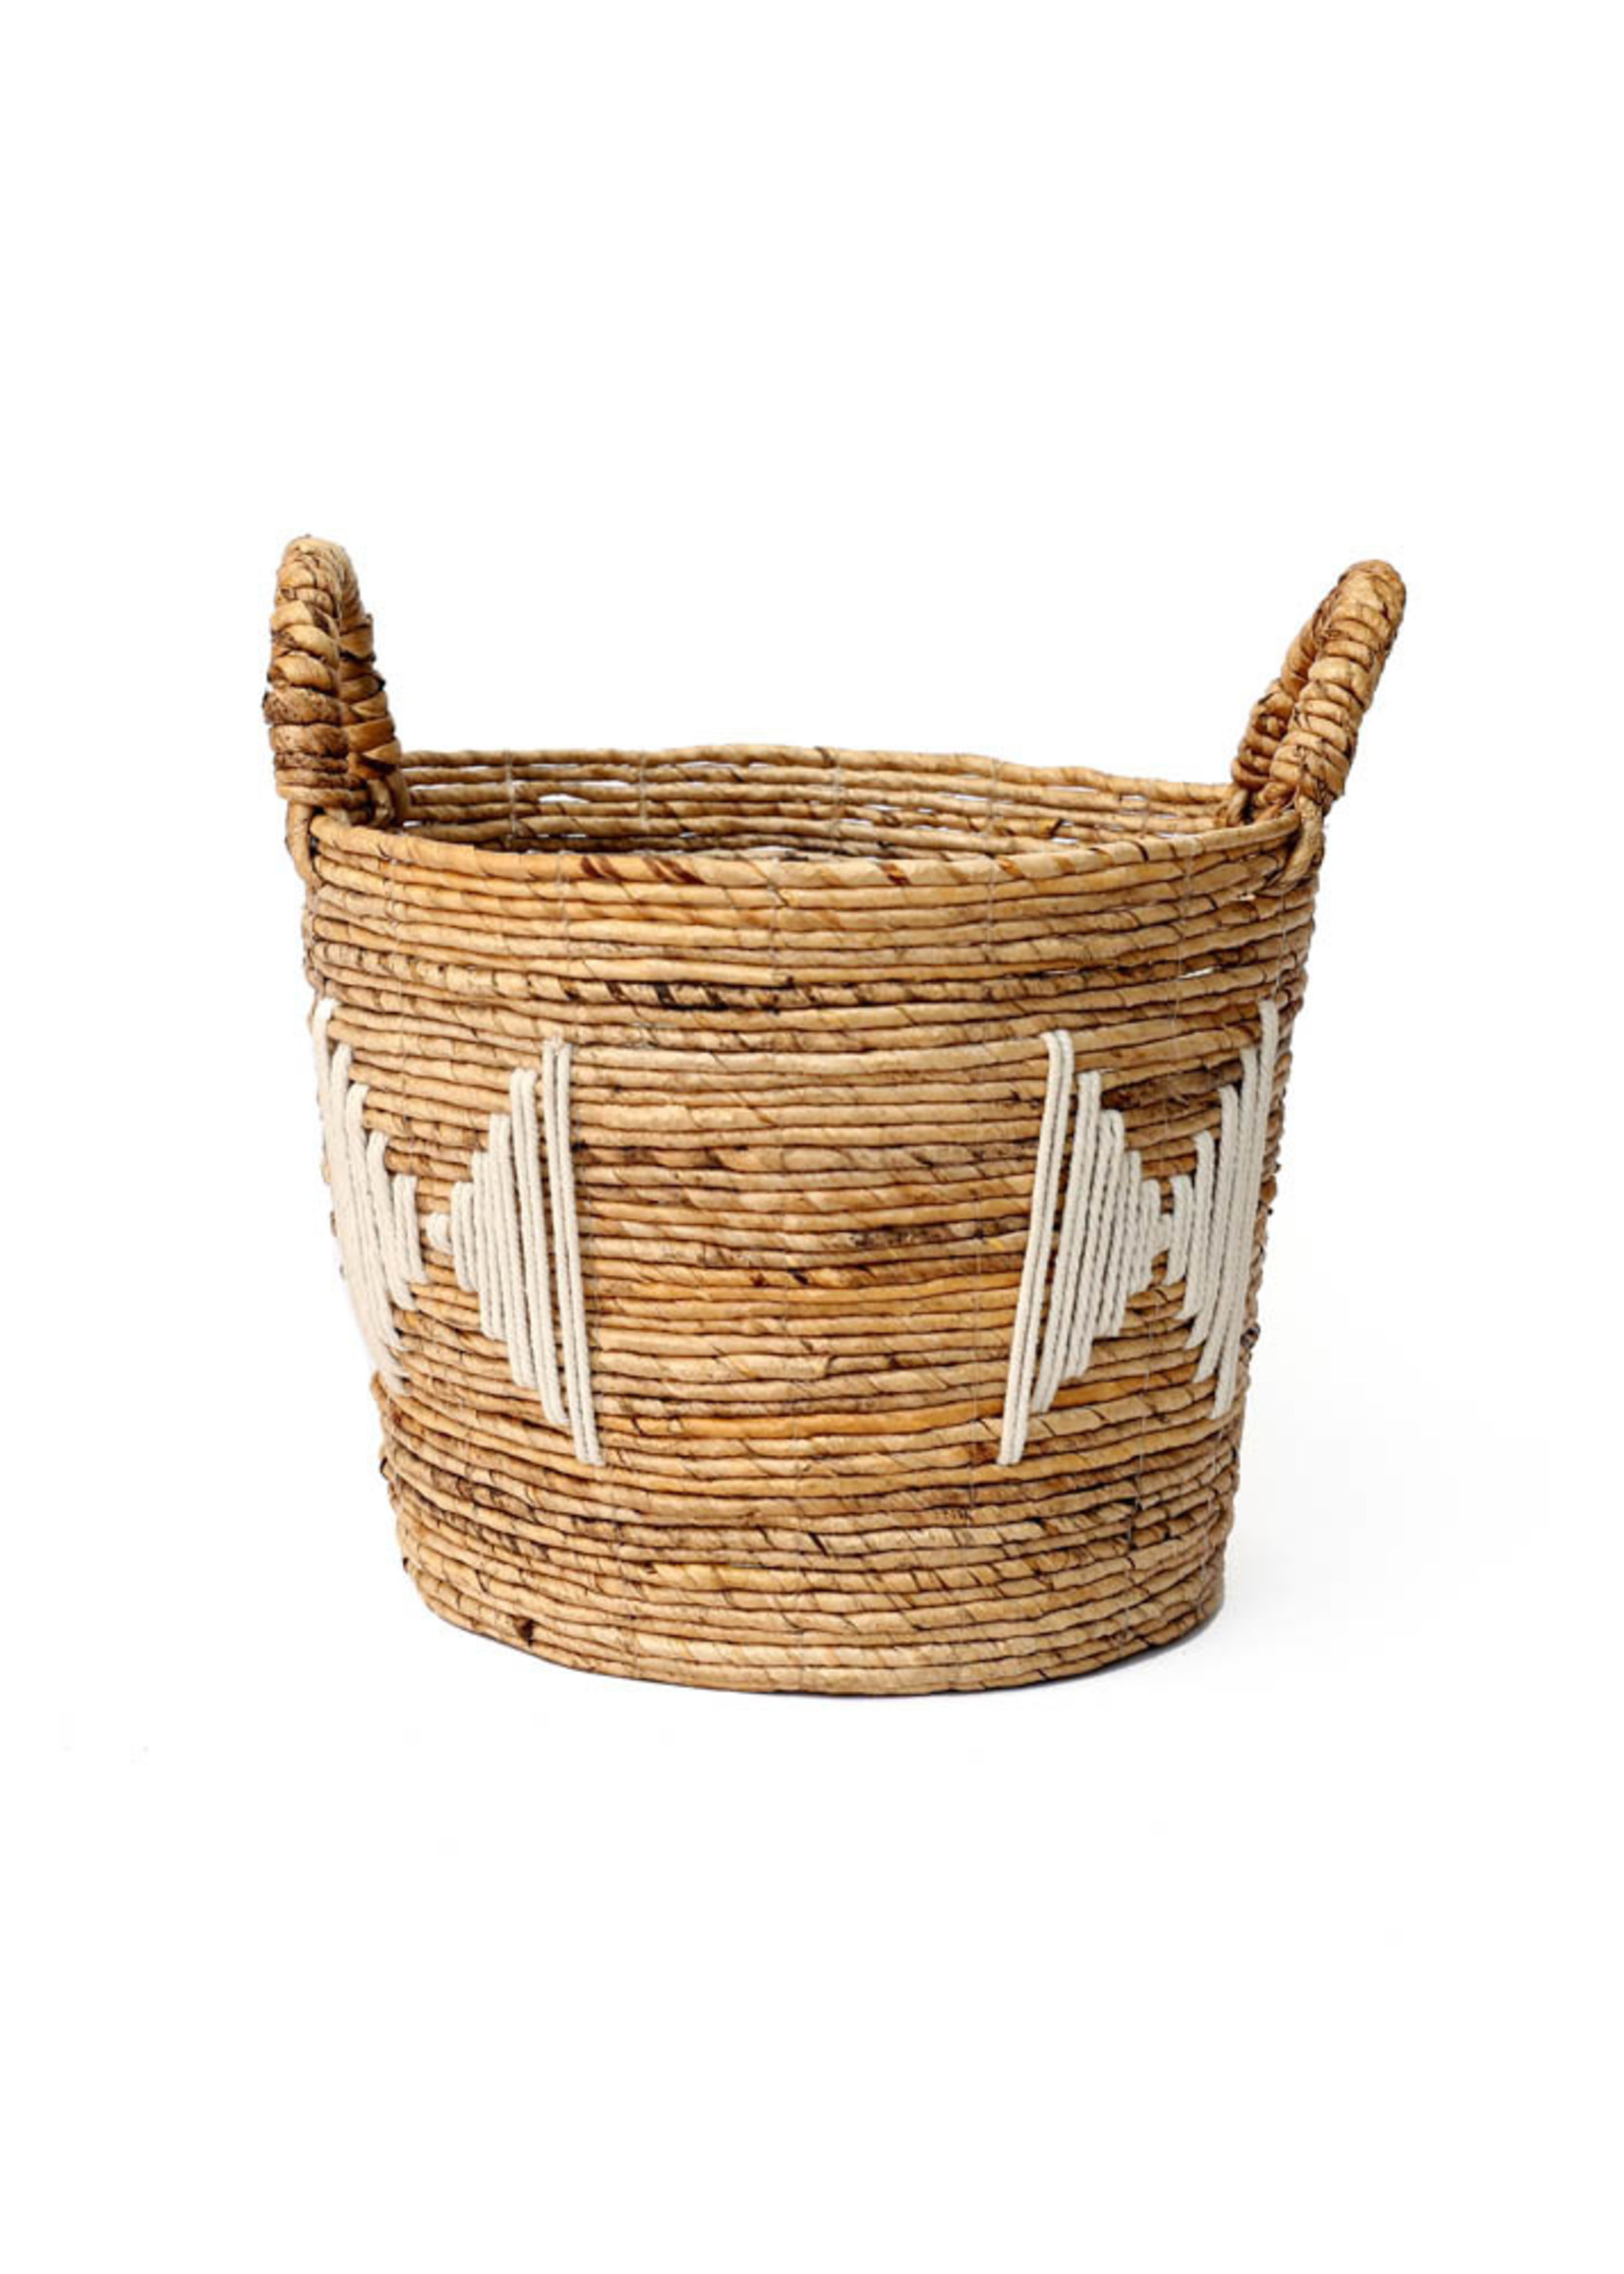 The Banana Stitched Baskets - Natural White - Small